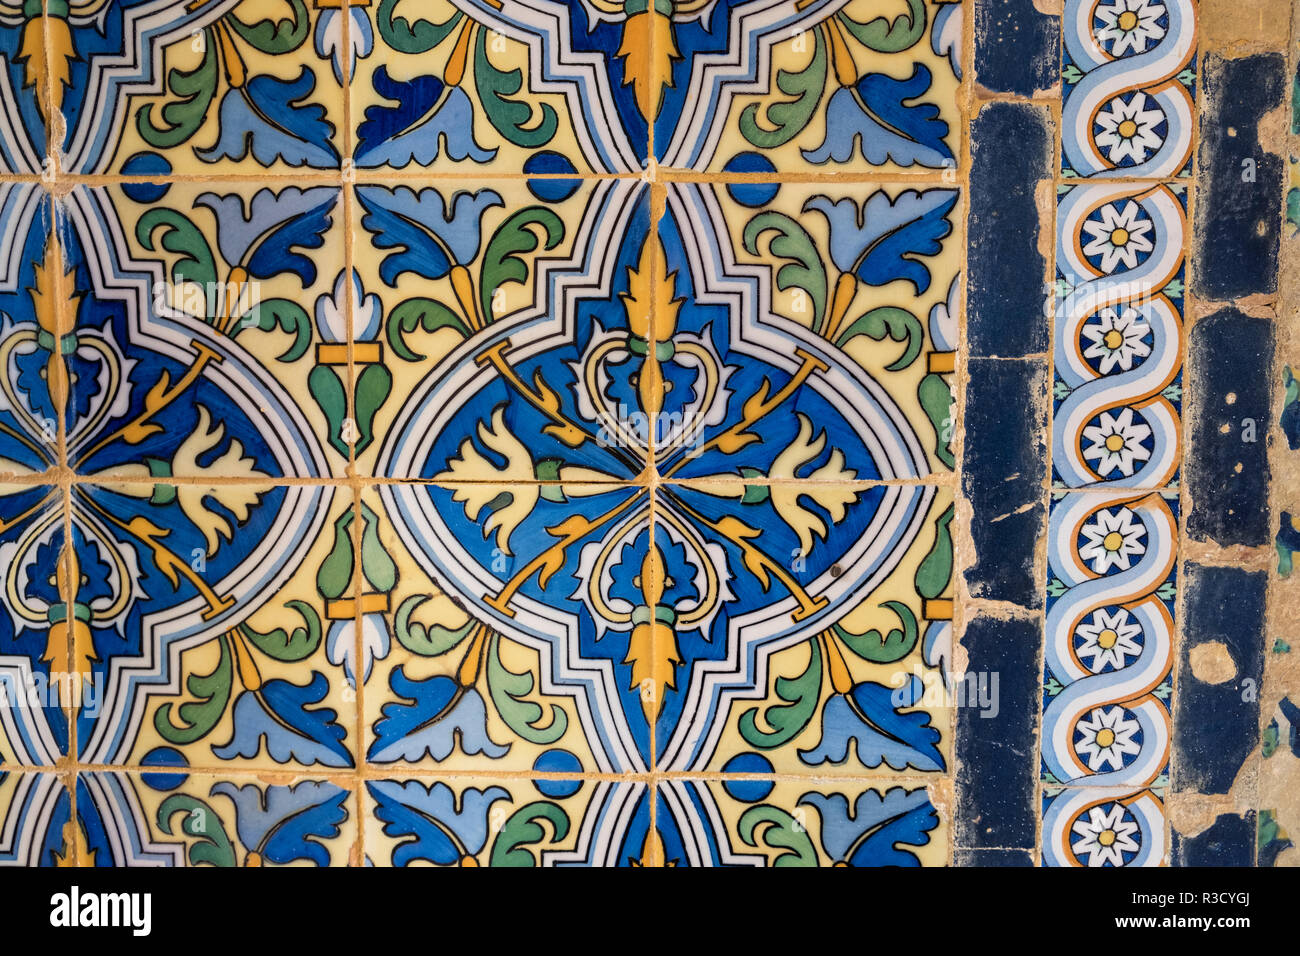 Section of ornate decorative wall tiles in the gardens of Real Alcazar, Seville, Andalucia, Spain - Stock Image